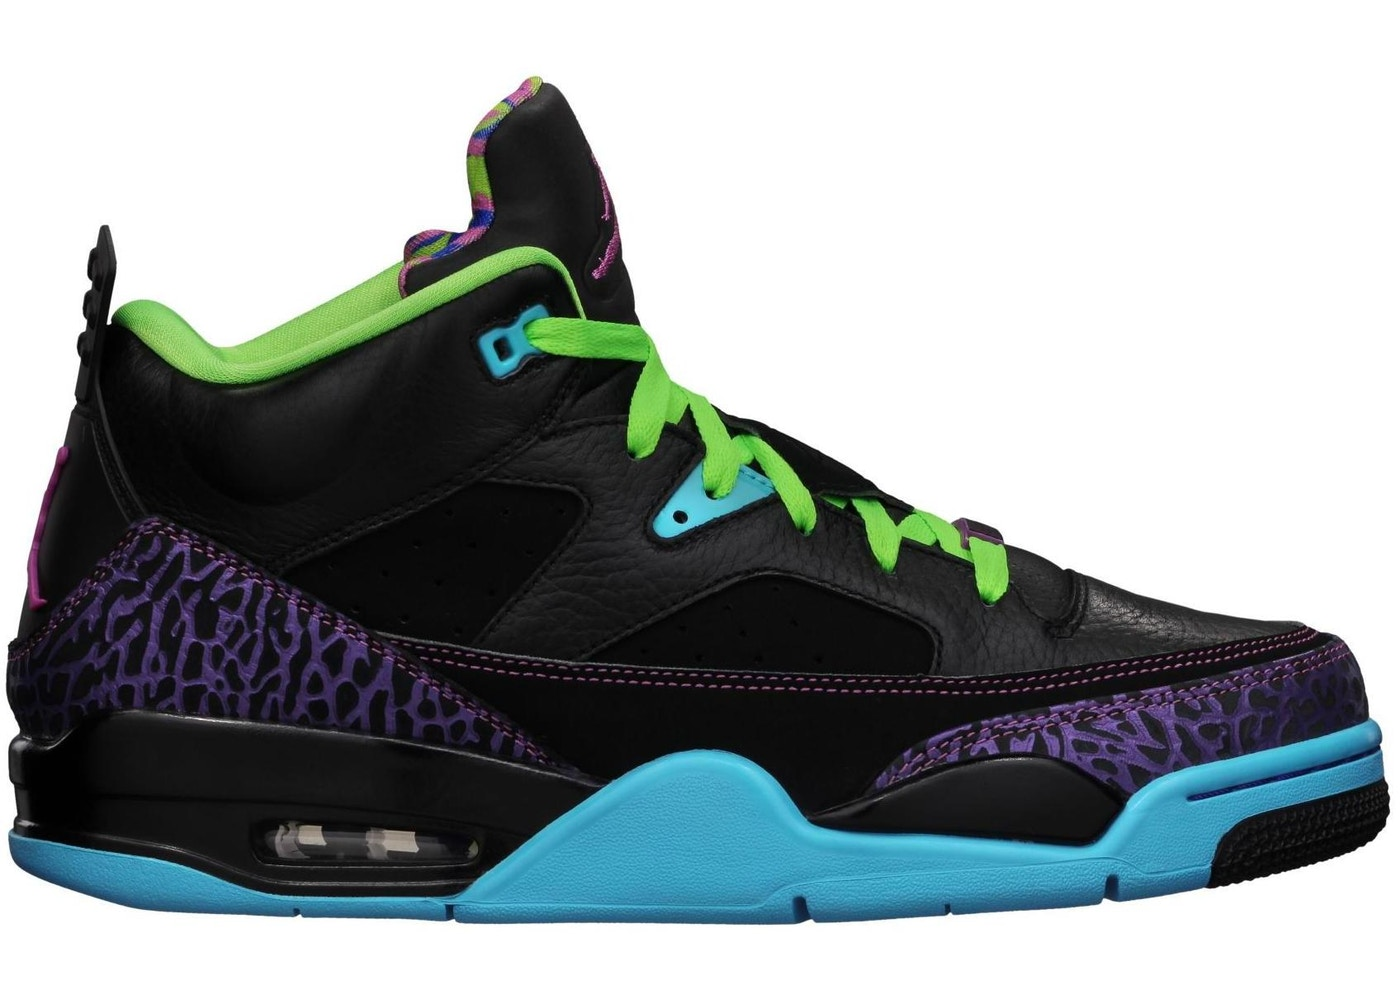 check out 7691a 7b039 Jordan Son of Mars Low Bel Air